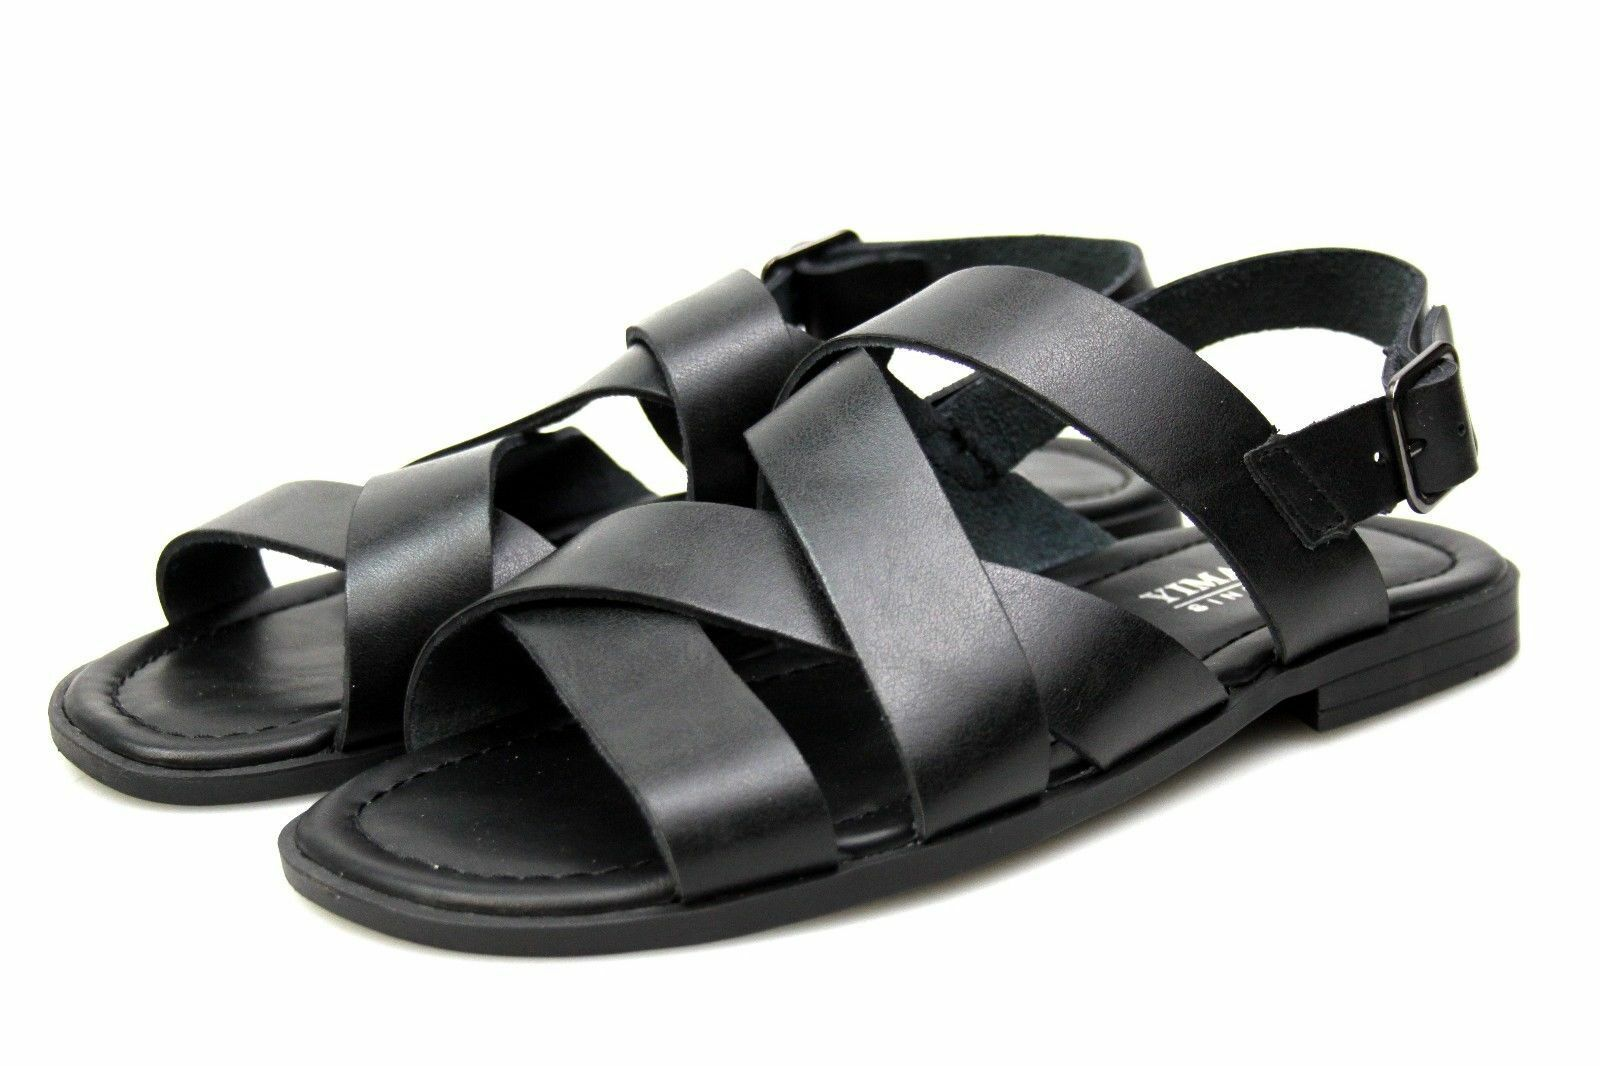 Mens Black Leather Lined Sandals Gladiator Multi Strap Summer Holiday